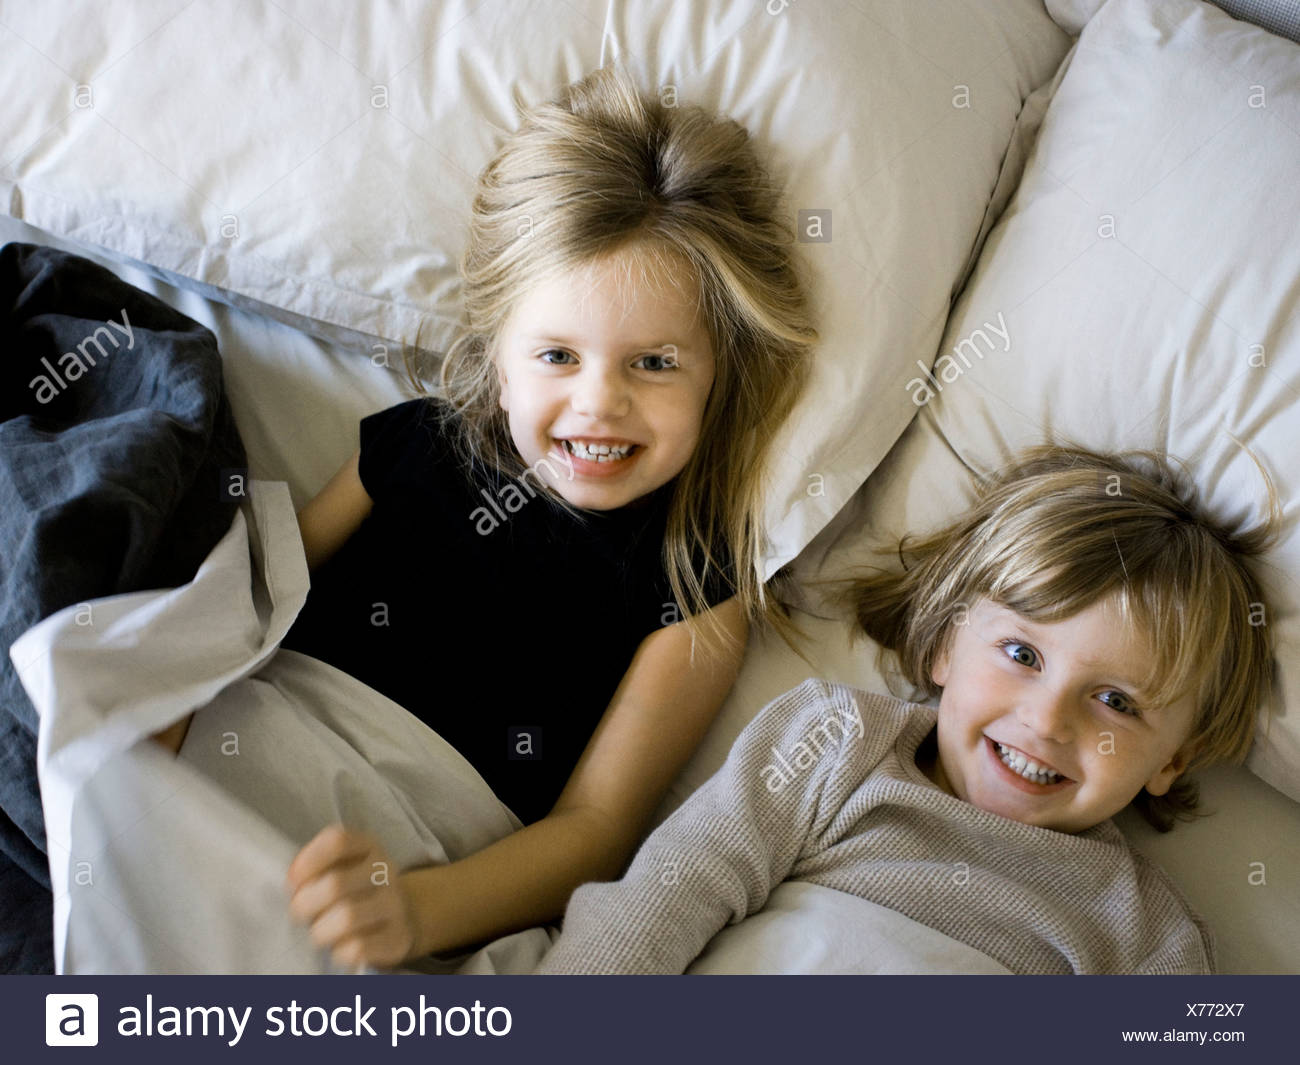 USA, Utah, Provo, Portrait of brother and sister (2-5) lying in bed - Stock Image